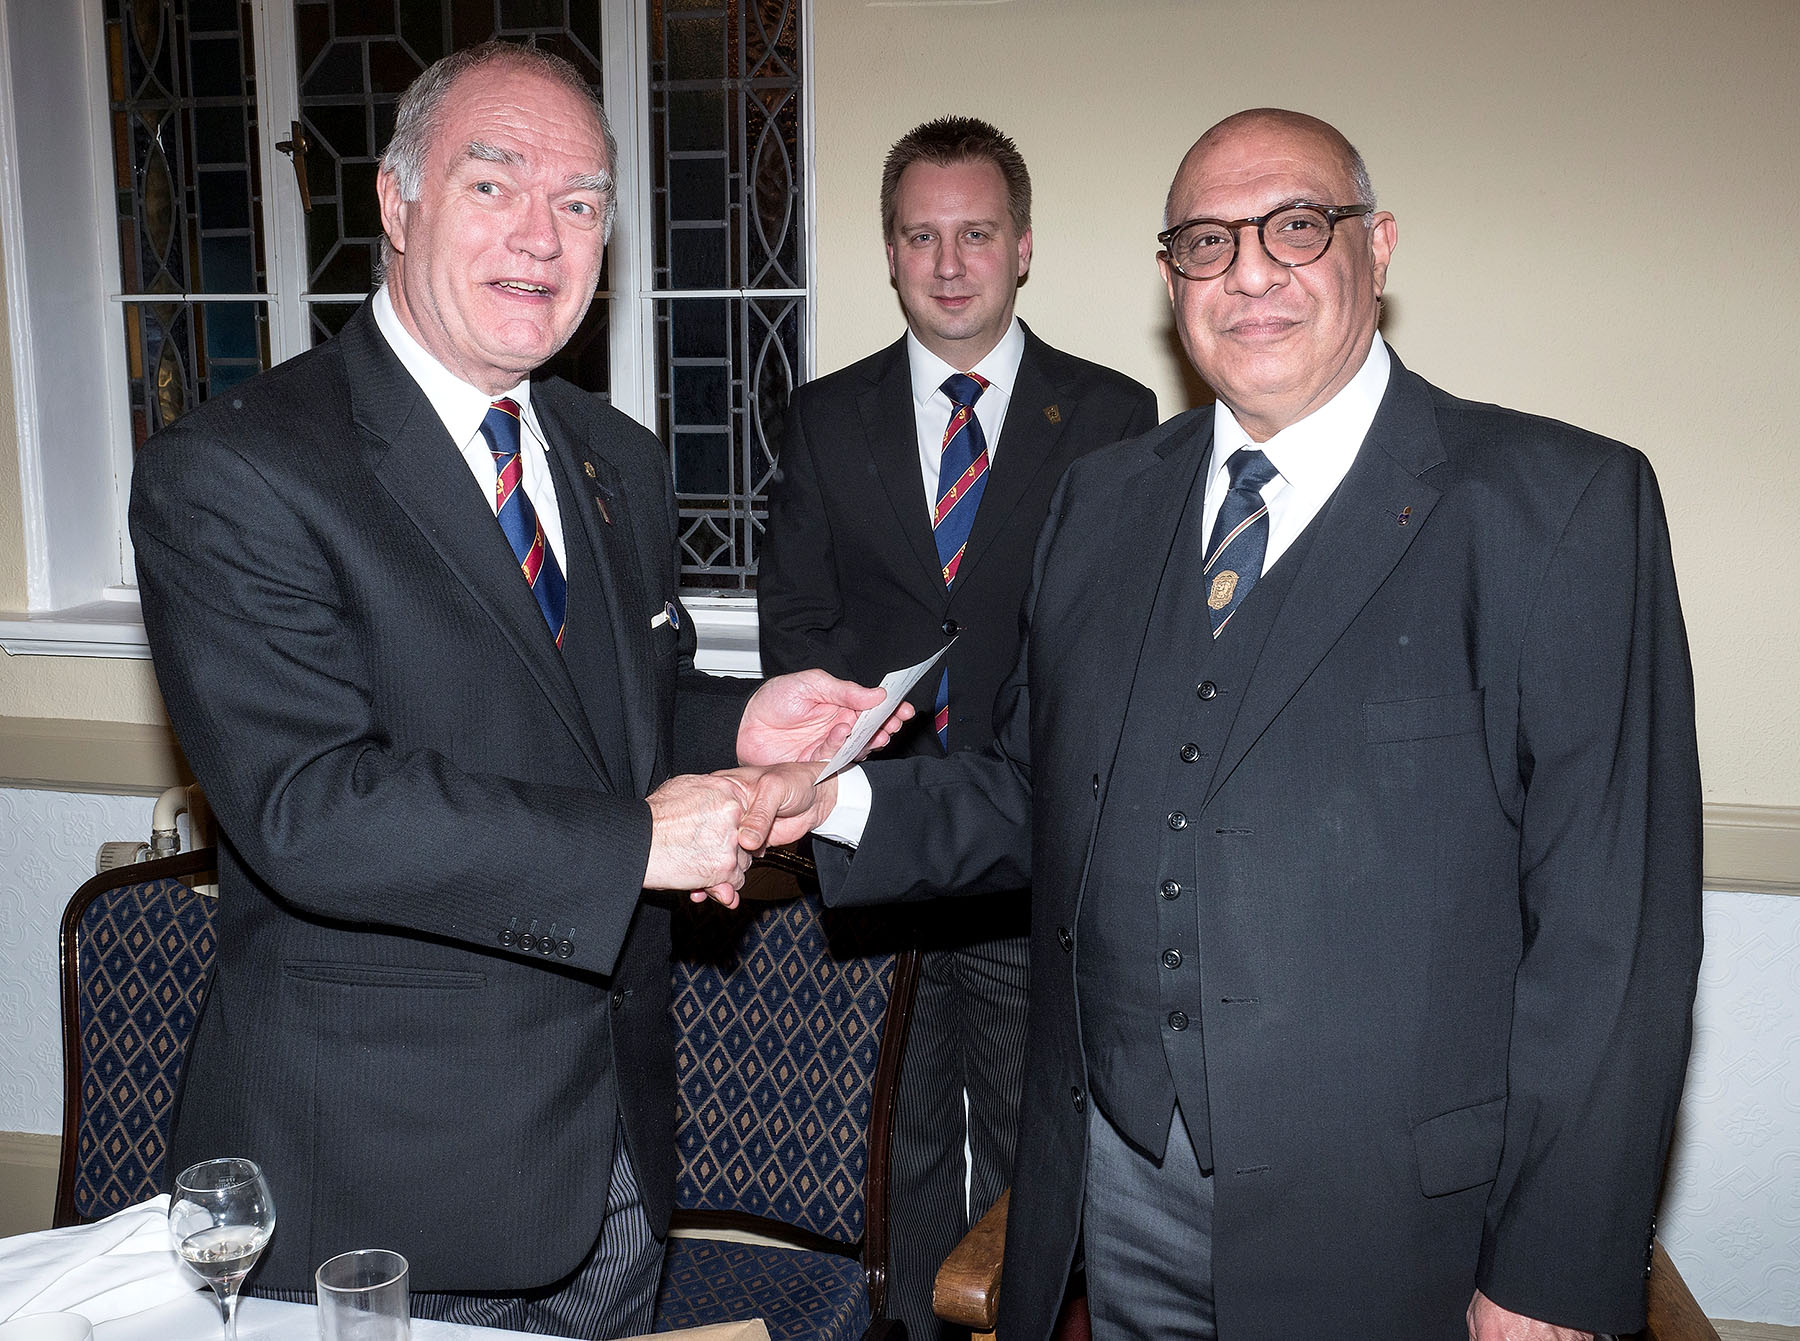 The Deputy Provincial Grand Master visits Table Fellowship Lodge